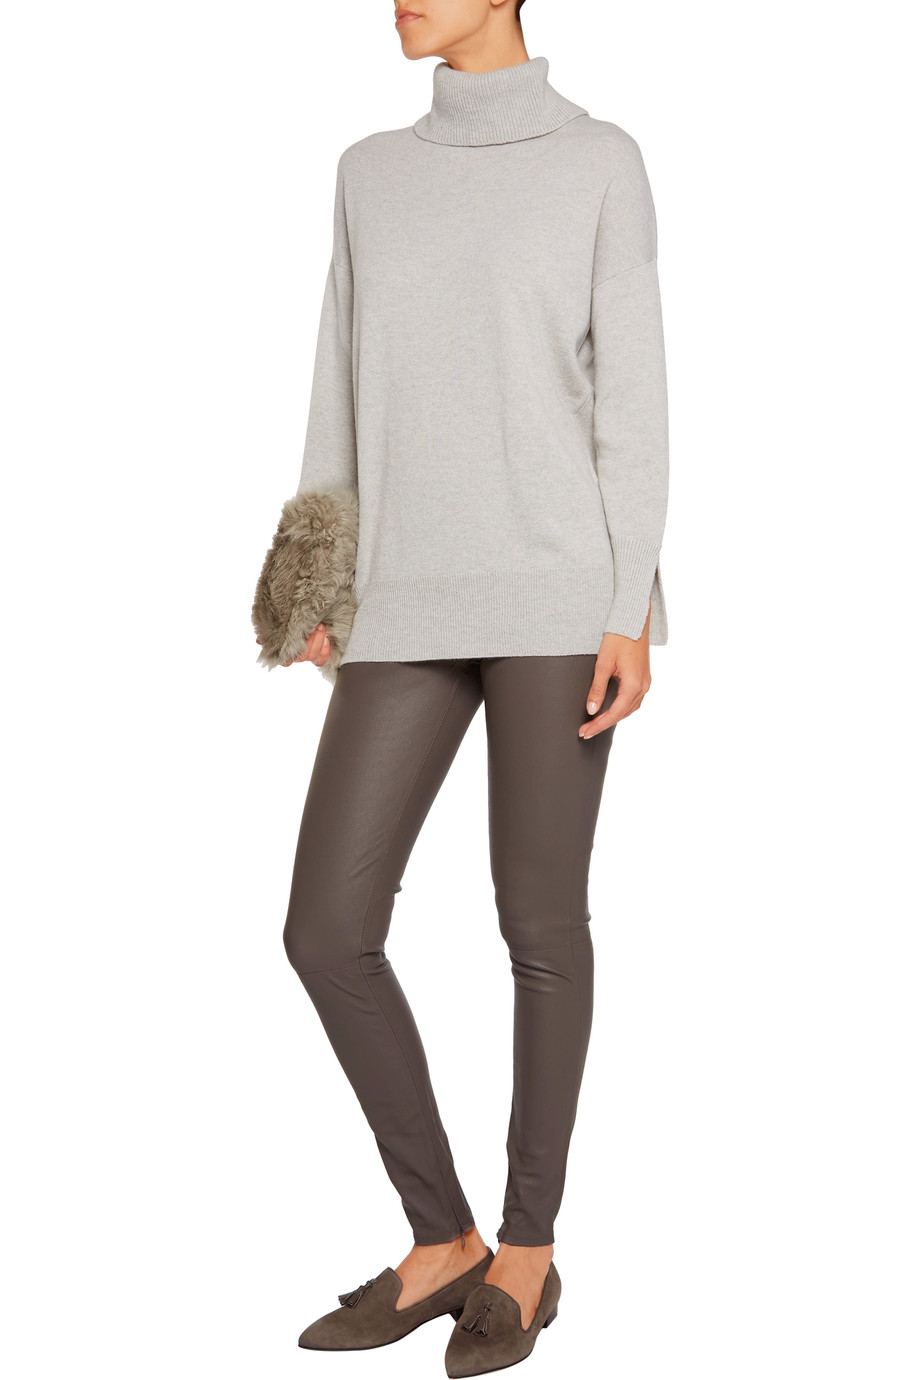 The Iris & Ink Grace Turtleneck Sweater in Grey